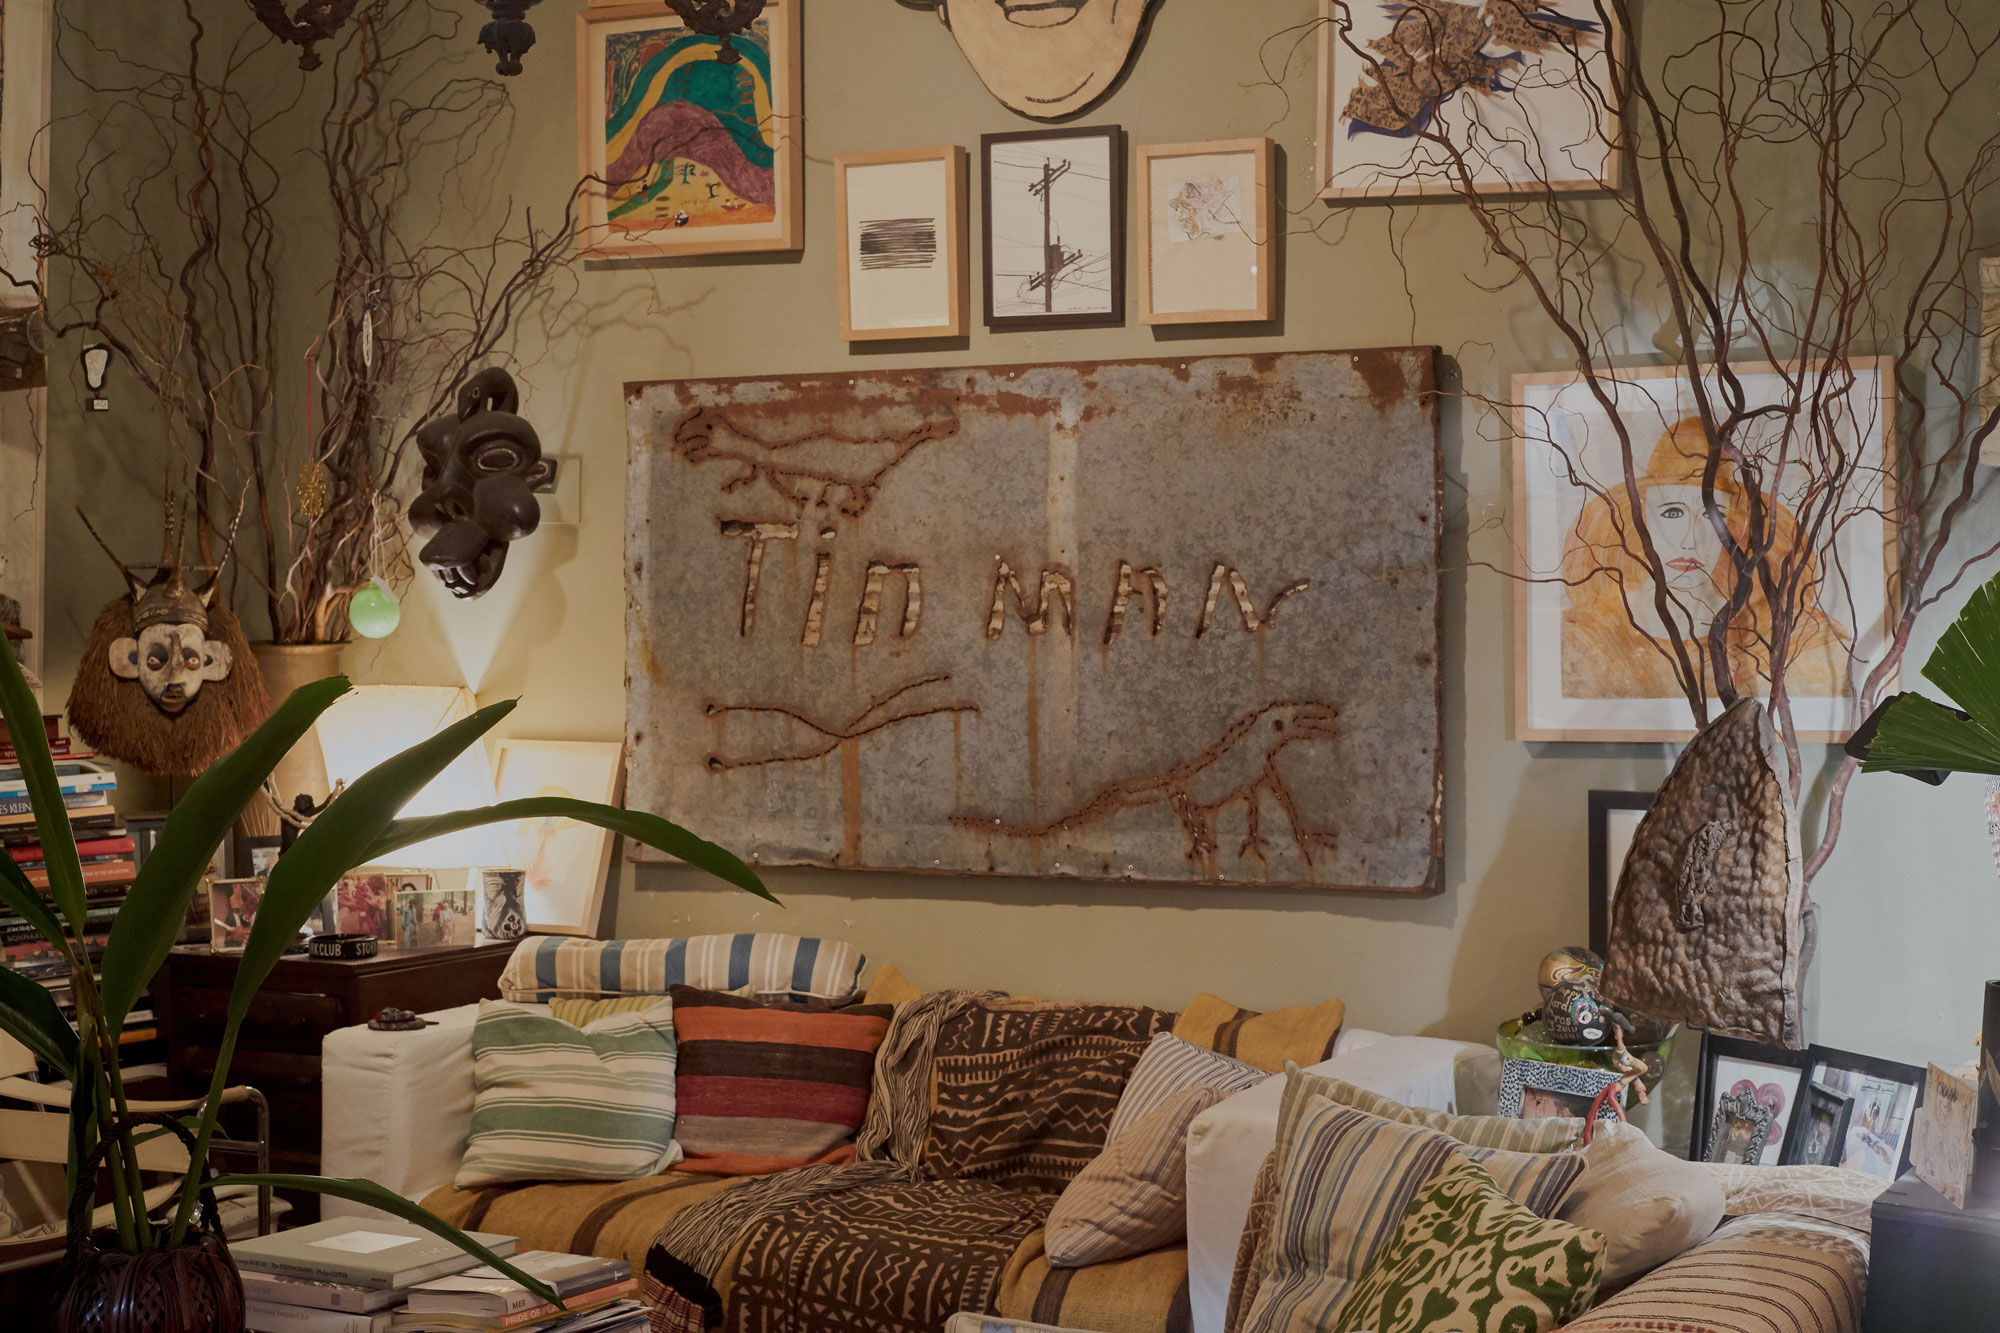 A sign made by Charlie Lucas from Alabama is the centerpiece in Fagaly's living room. At its edges, works by Tony Oursler, Trenton Doyle Hancock, and Jacqueline Humphries hang above couches that were formerly a part of Christian Marclay's The Clock (2010). Photo by Michael Adno for Artsy.